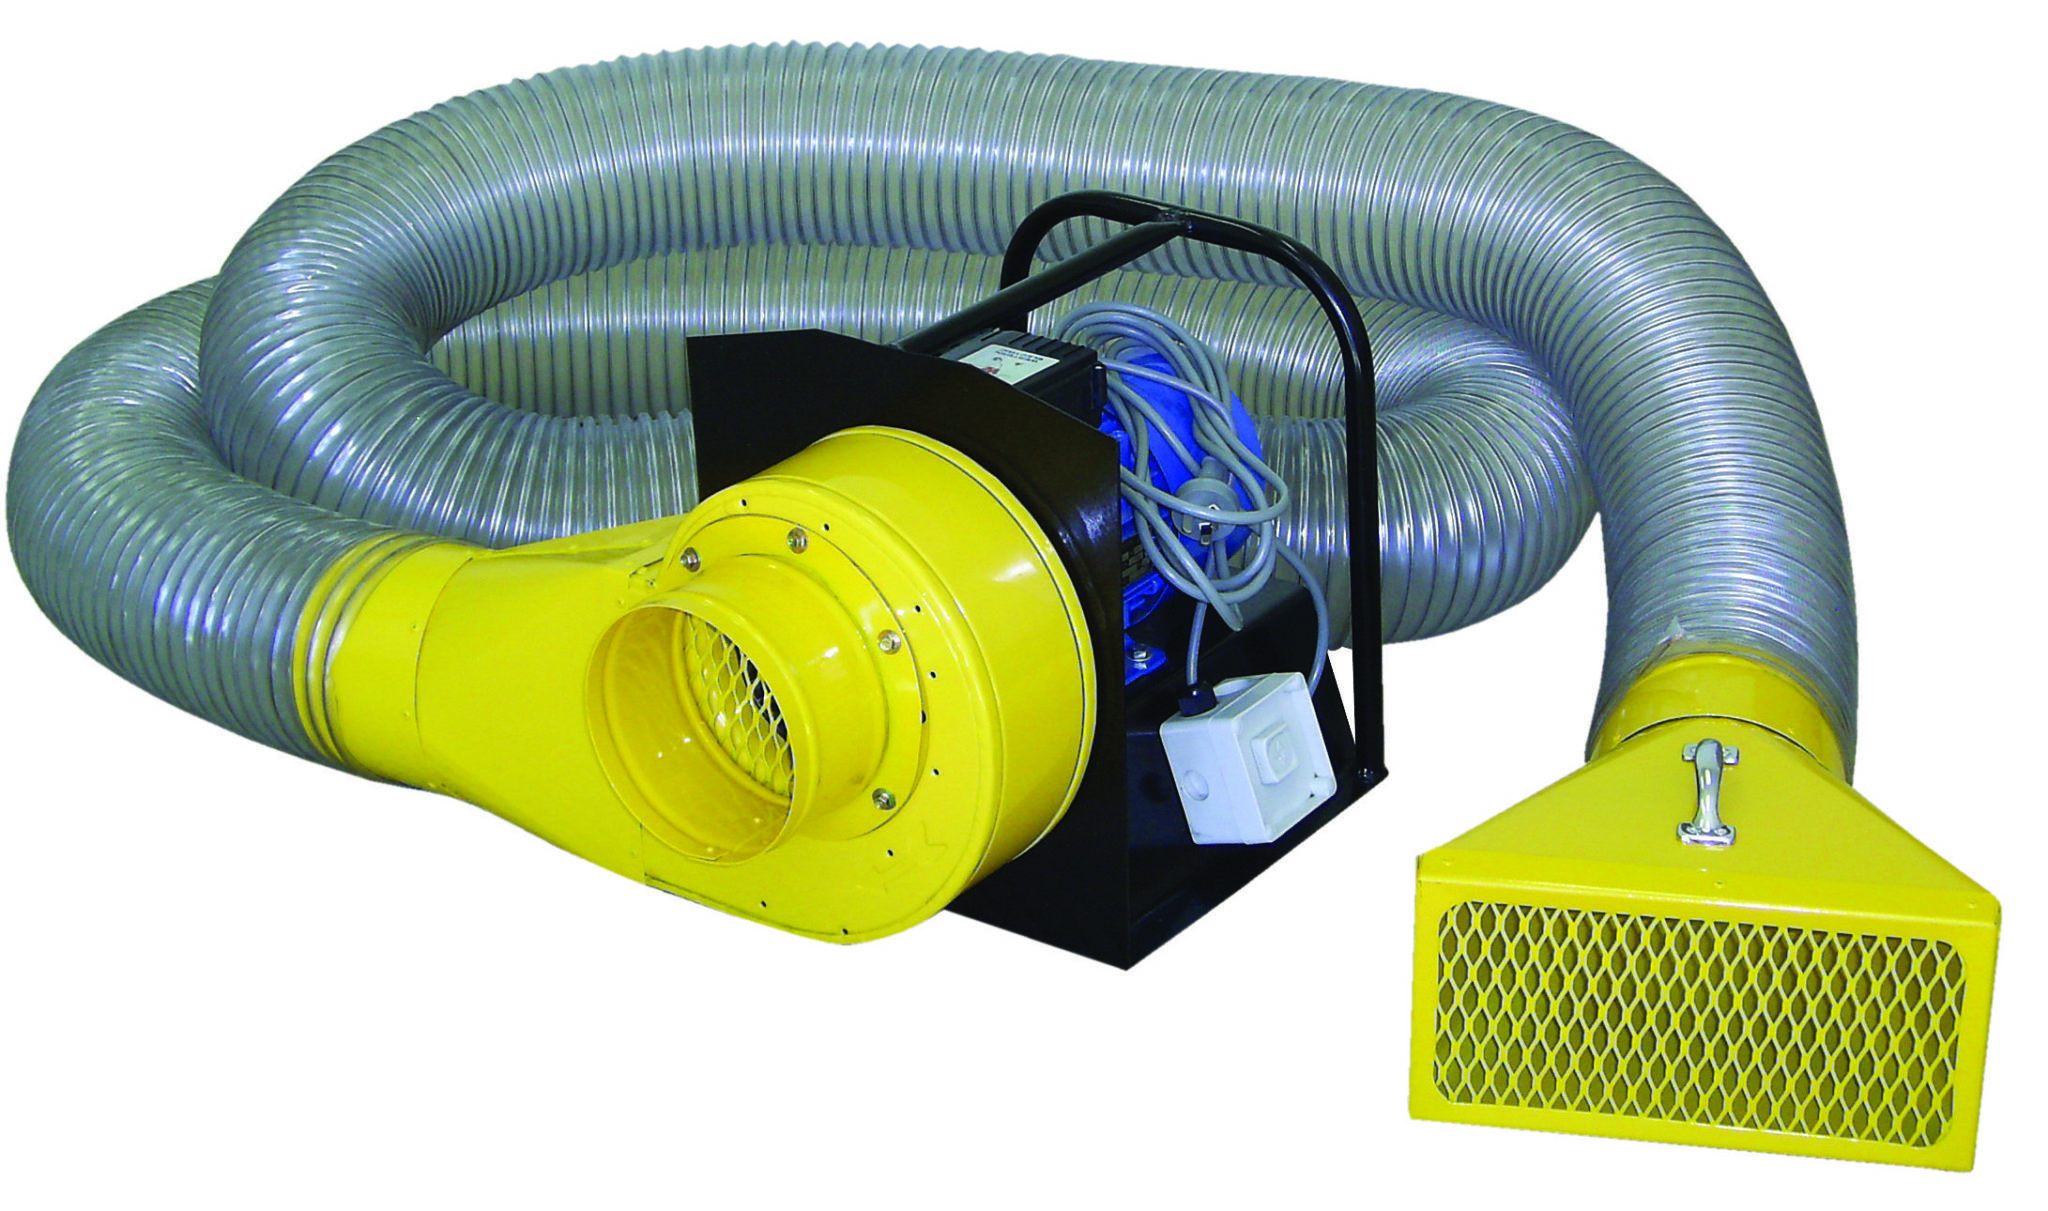 Portable Extractor Fan Ventilation Products Fixed Or Portable Ventilation Equipment